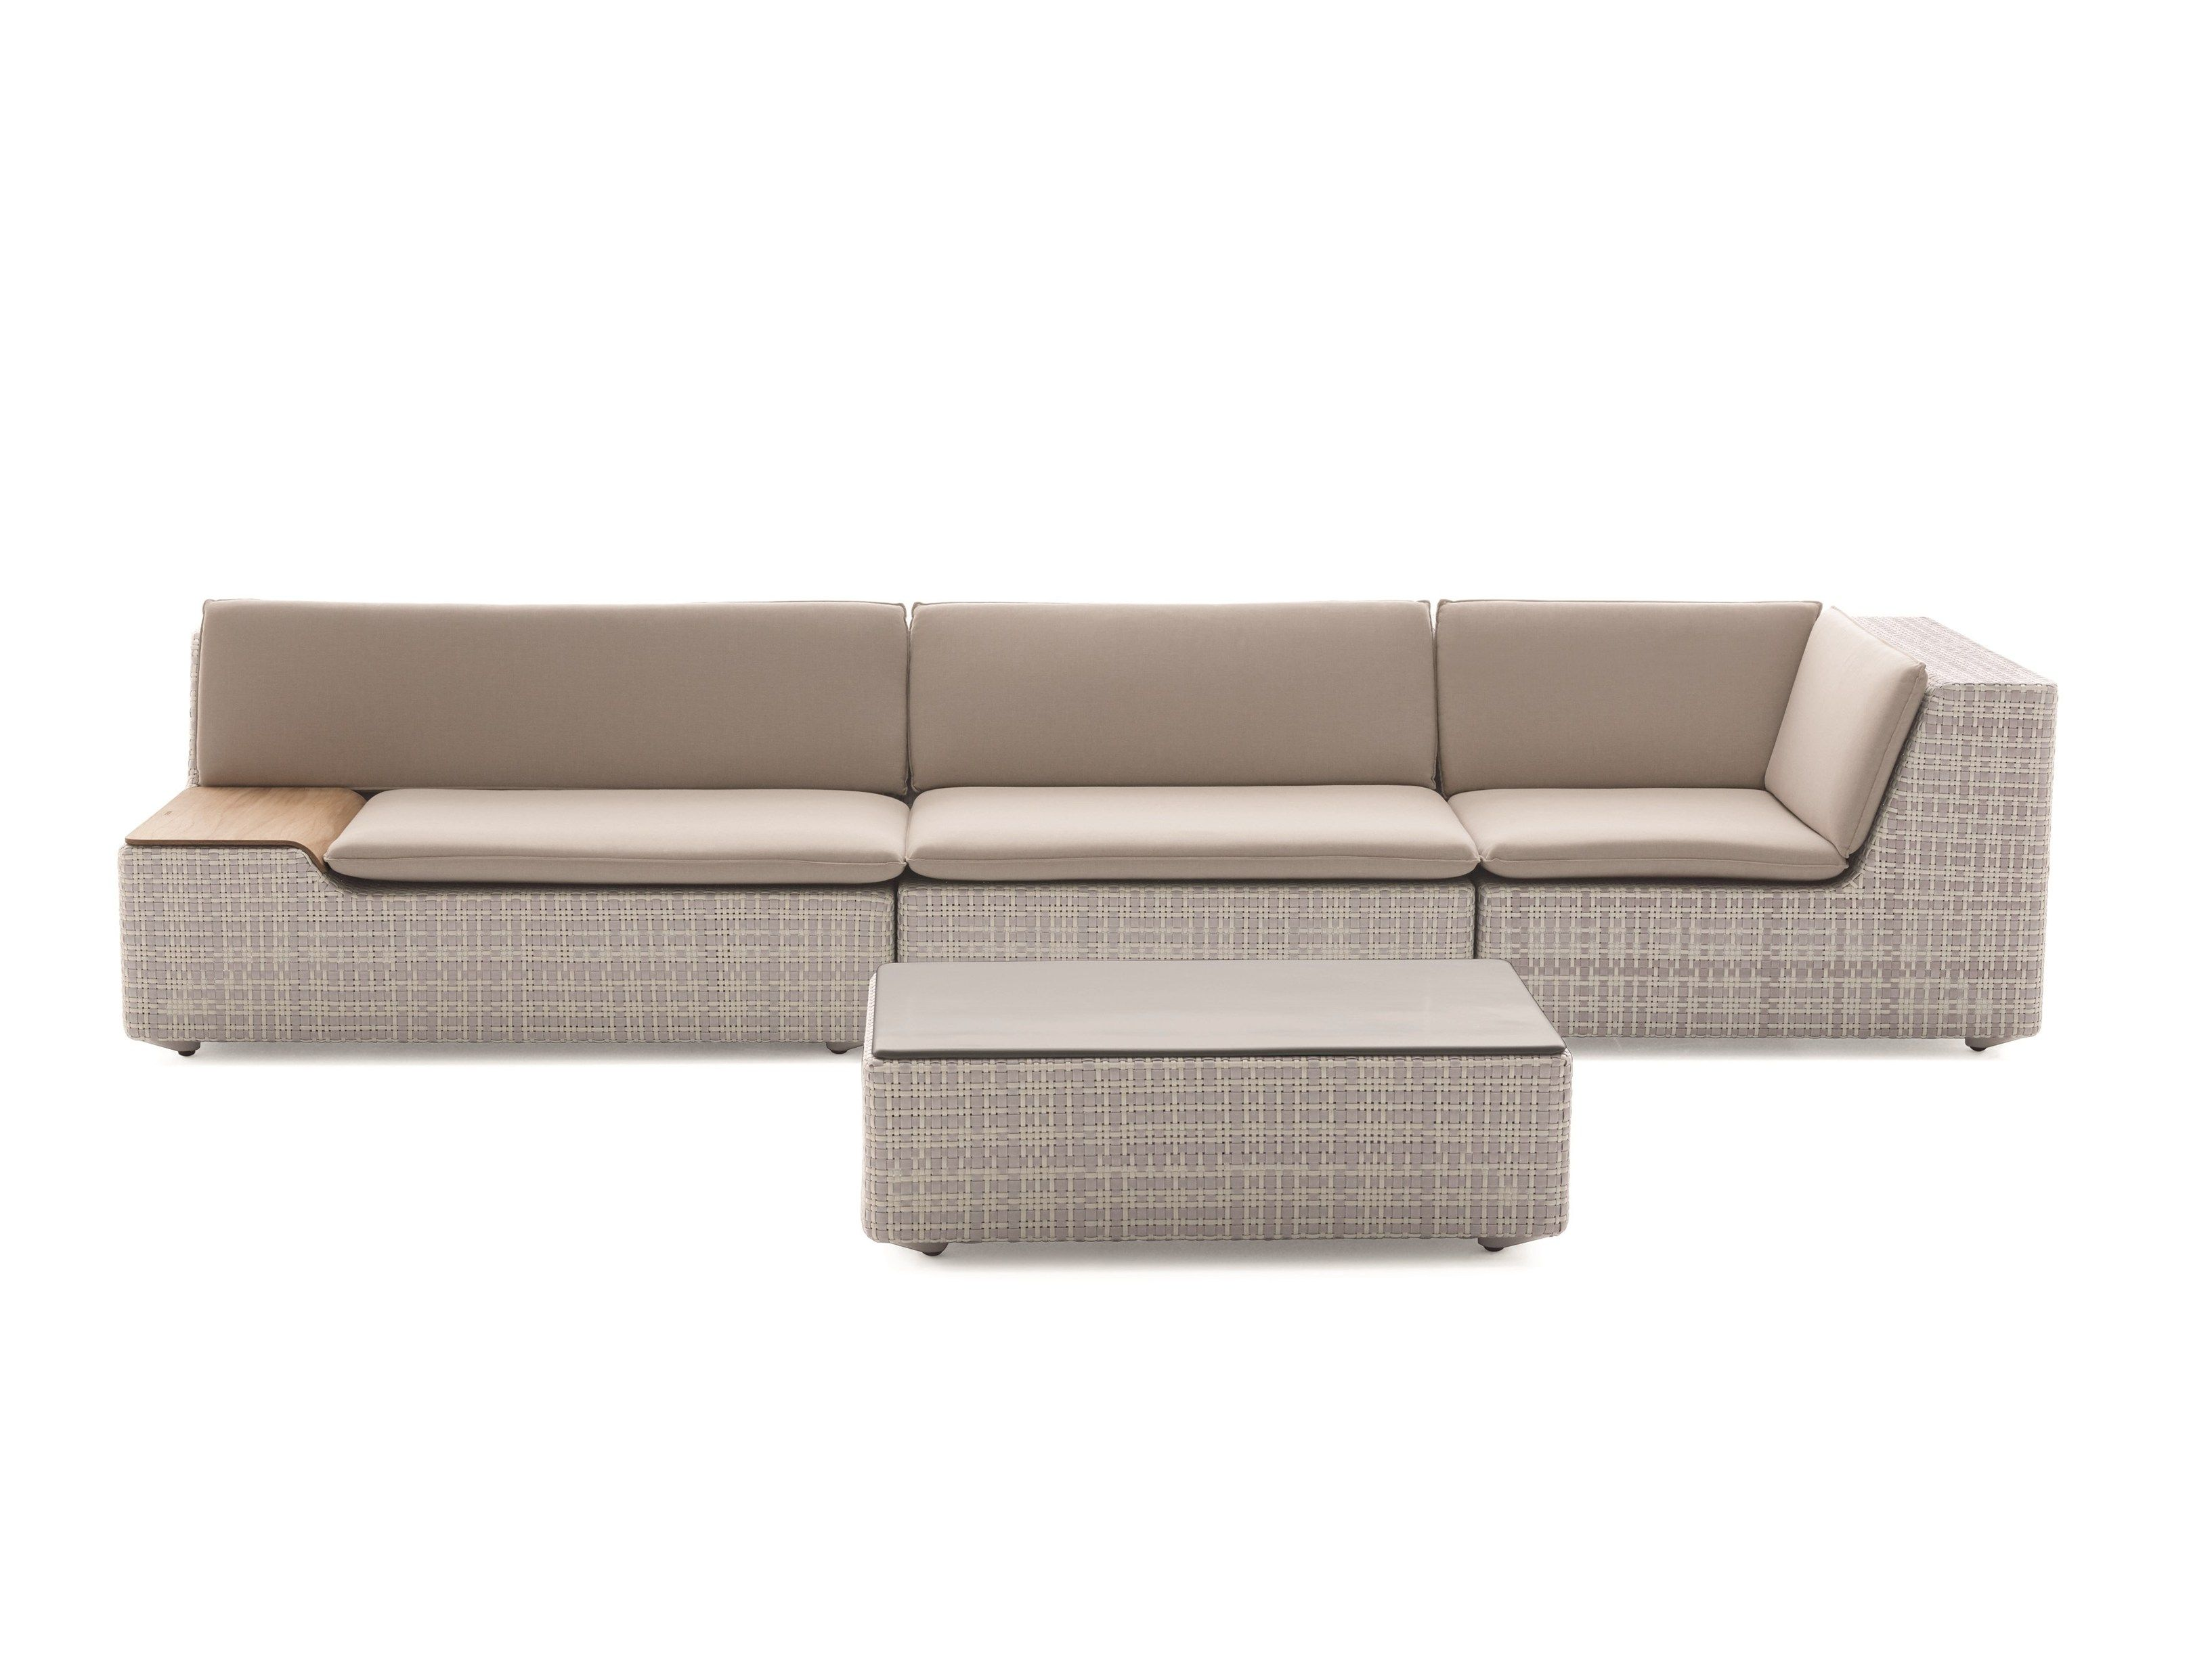 LOU Modular Sofa Lou Collection By Dedon Design Toan Nguyen